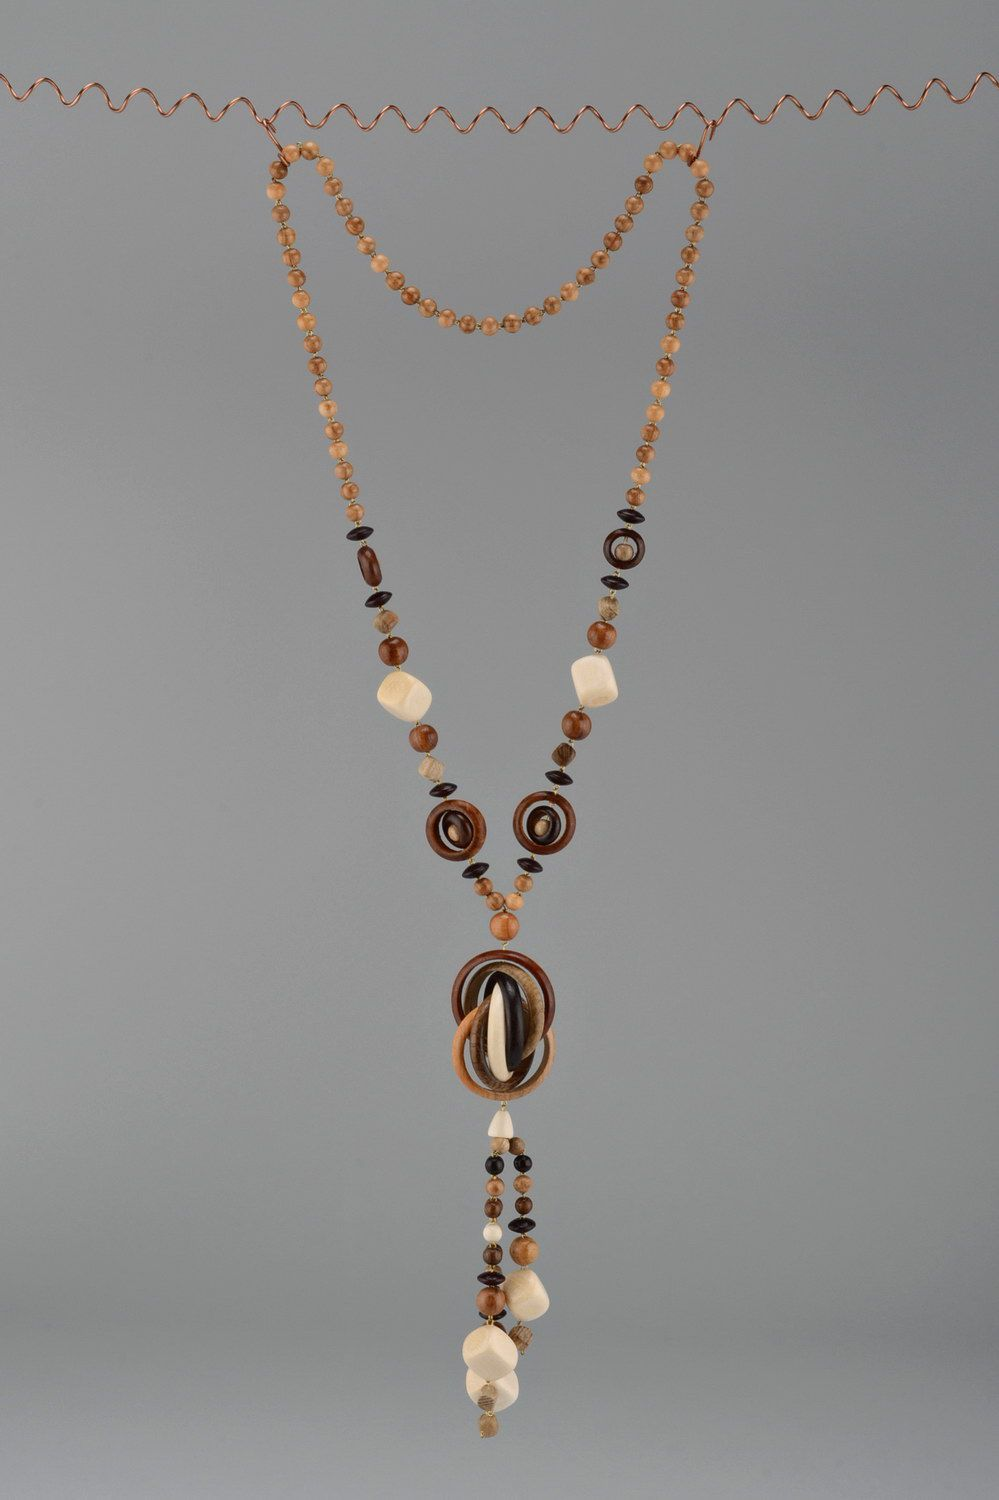 Long beads made of different wood species without clasps photo 3